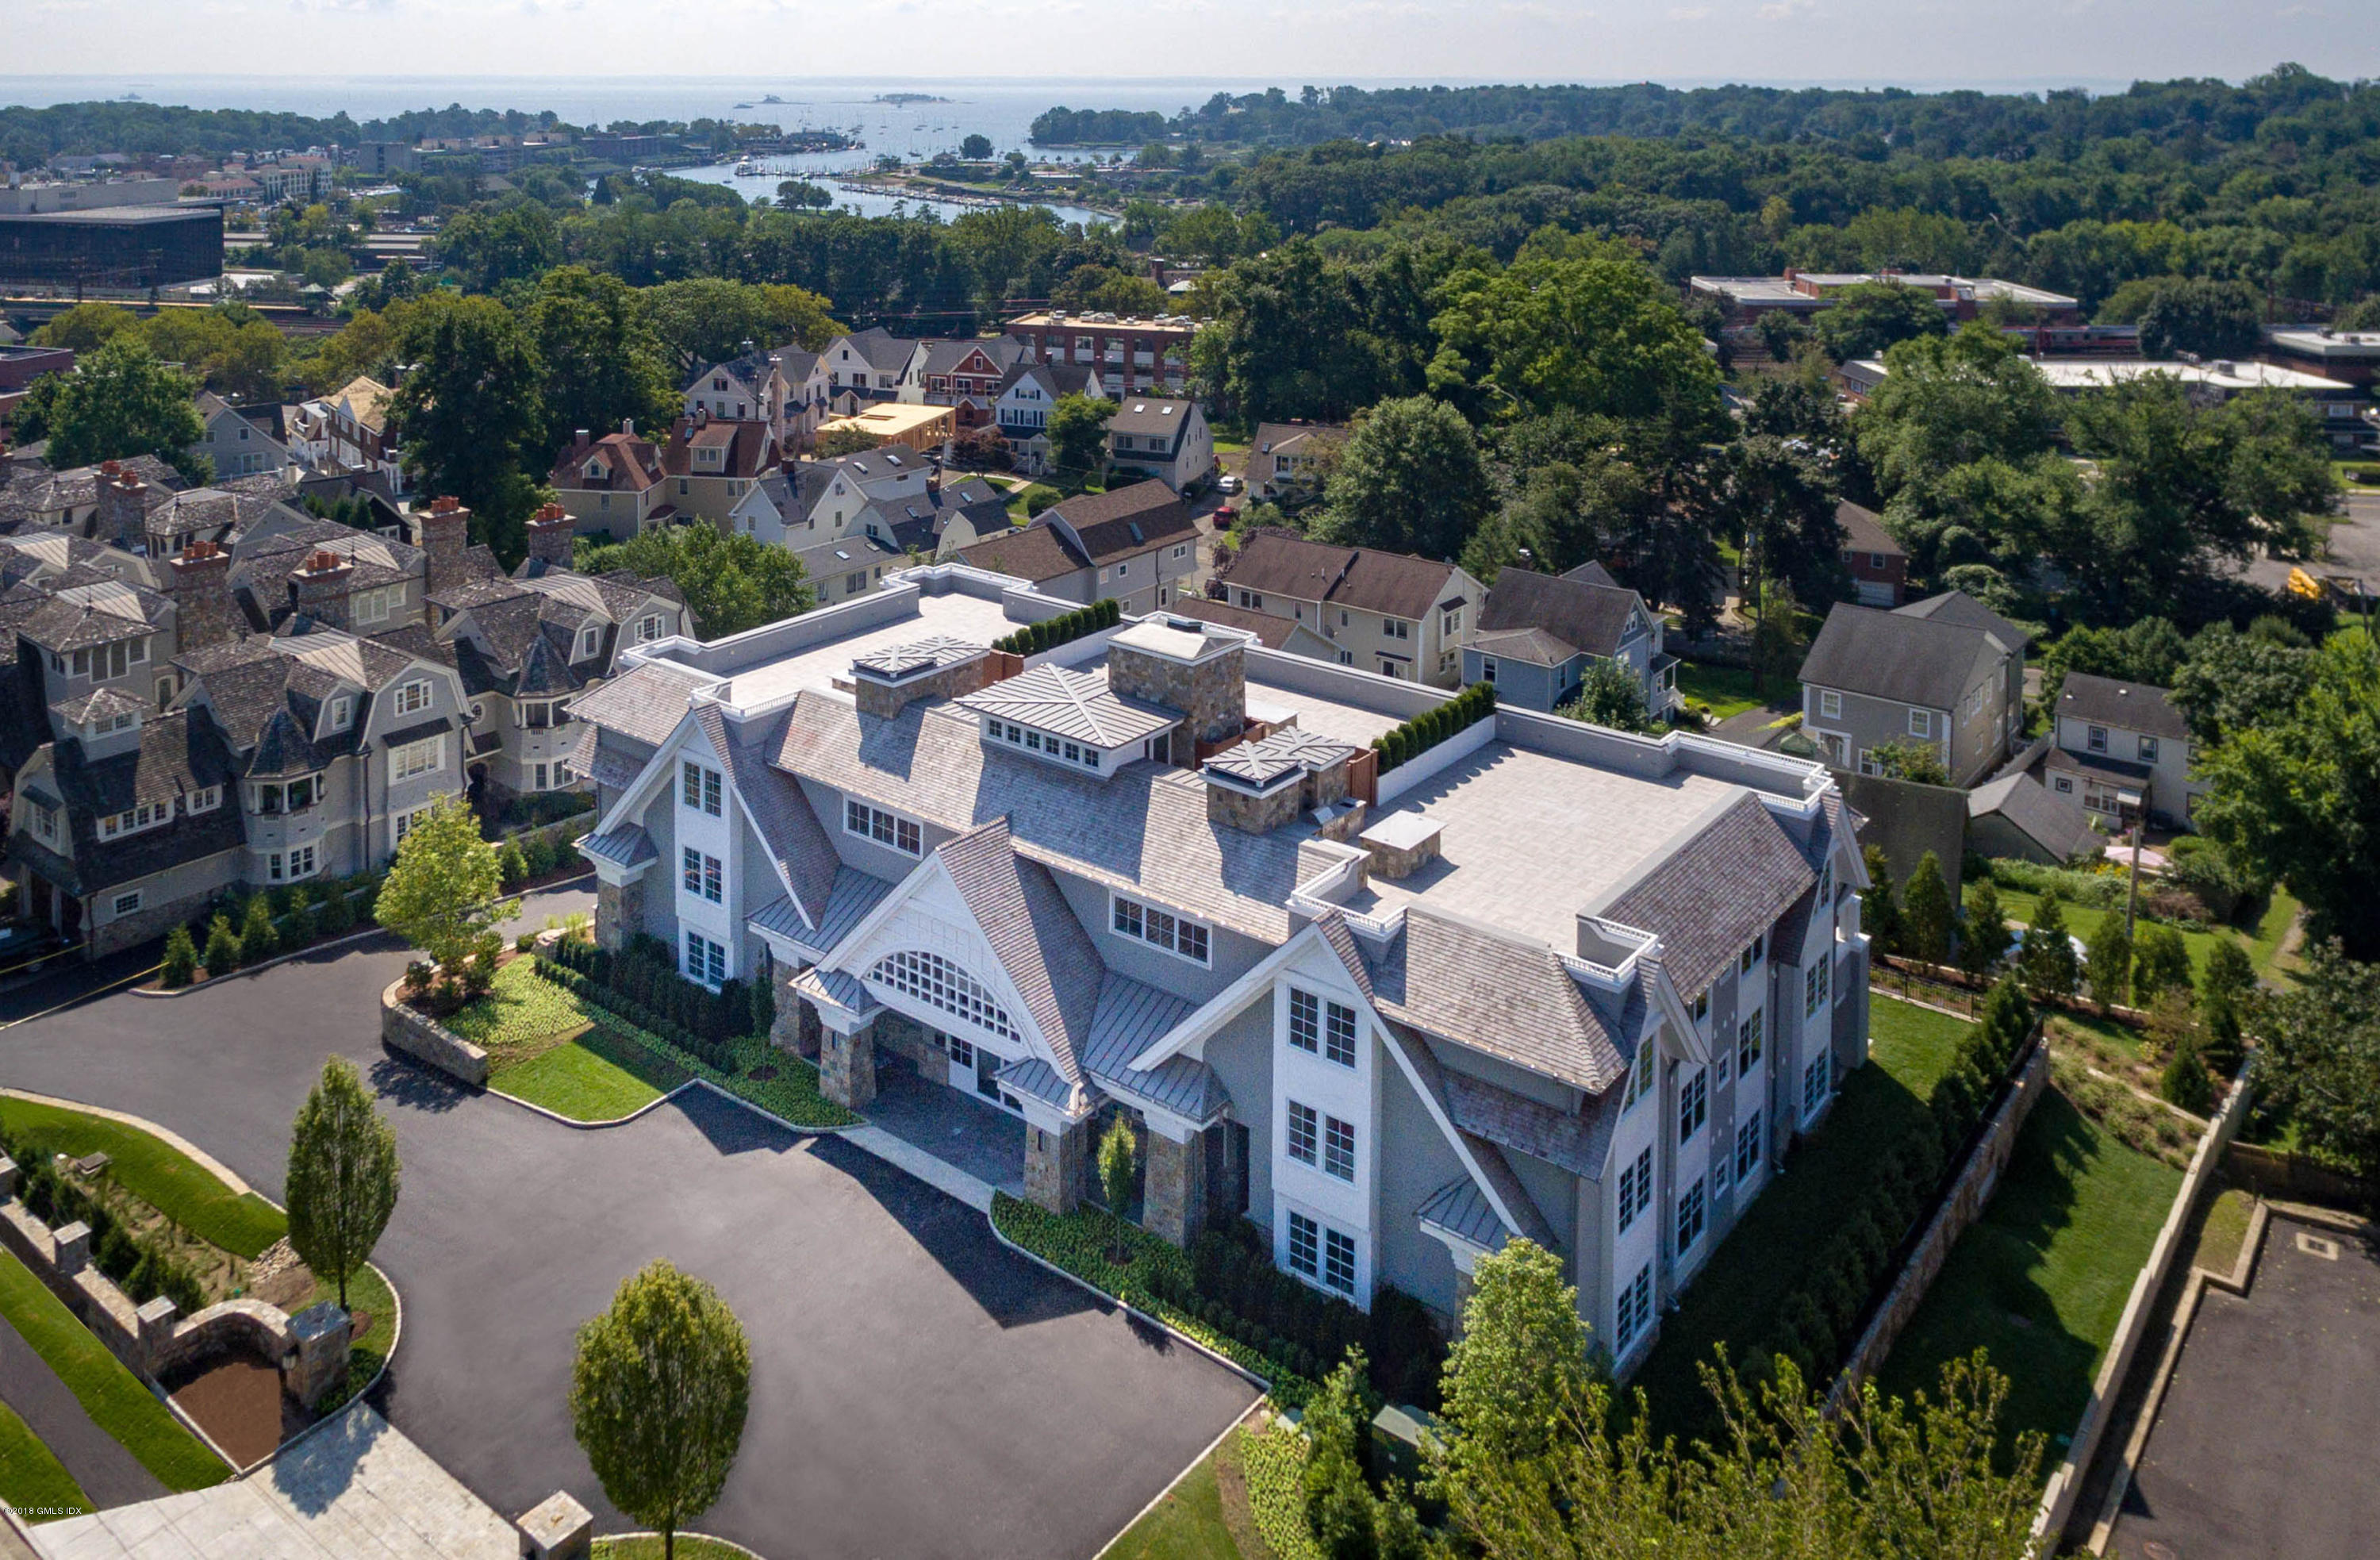 62-68 Sound View Drive,Greenwich,Connecticut 06830,2 Bedrooms Bedrooms,2 BathroomsBathrooms,Condominium,Sound View,105110